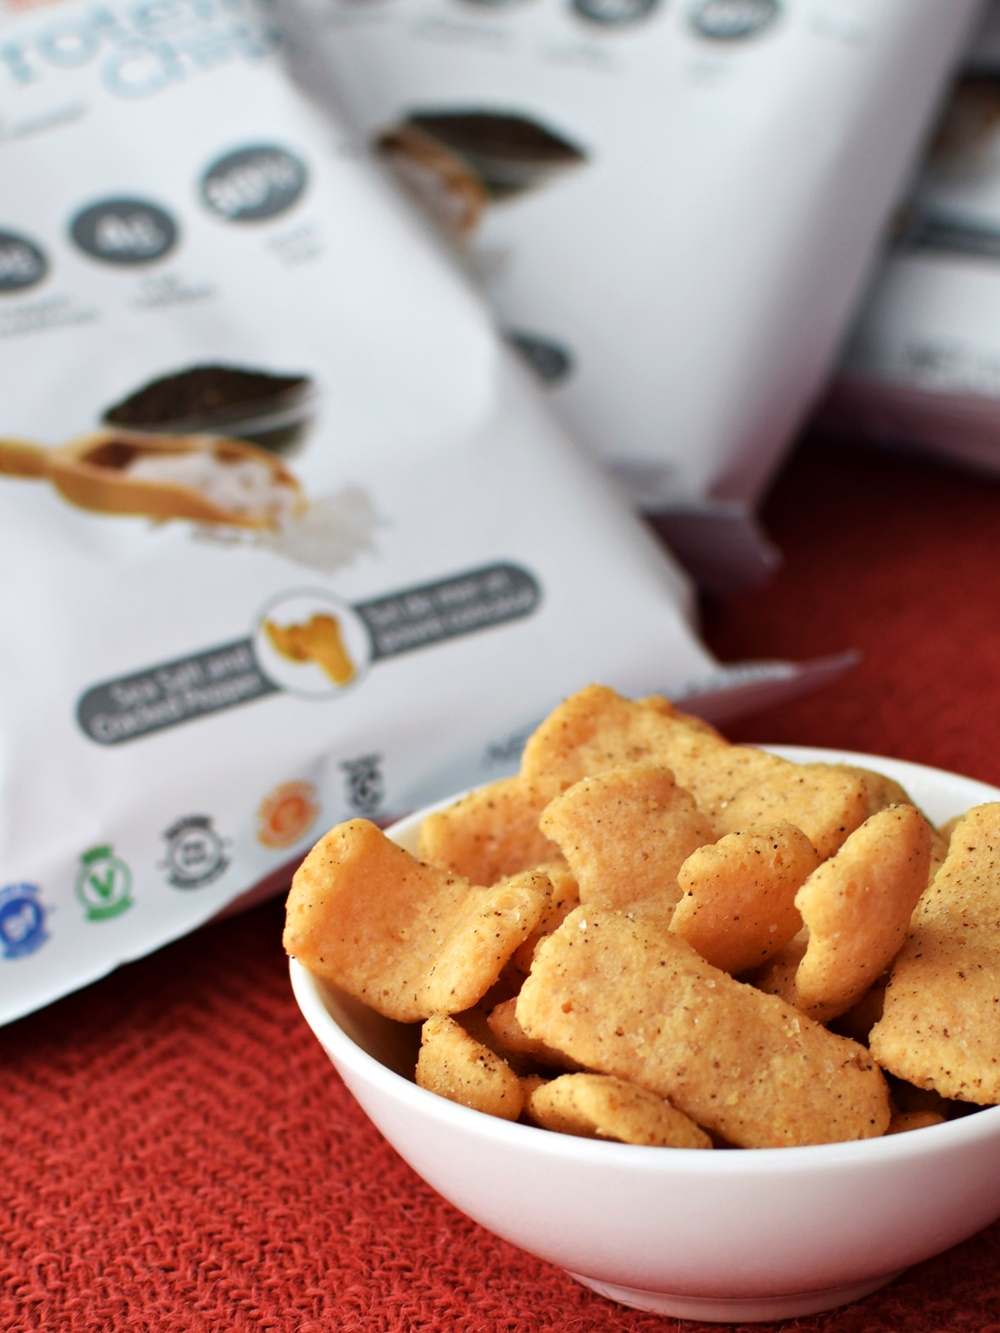 Simply Protein Chips - a dairy-free, gluten-free, soy-free, vegan snack with 15 grams of protein per serving